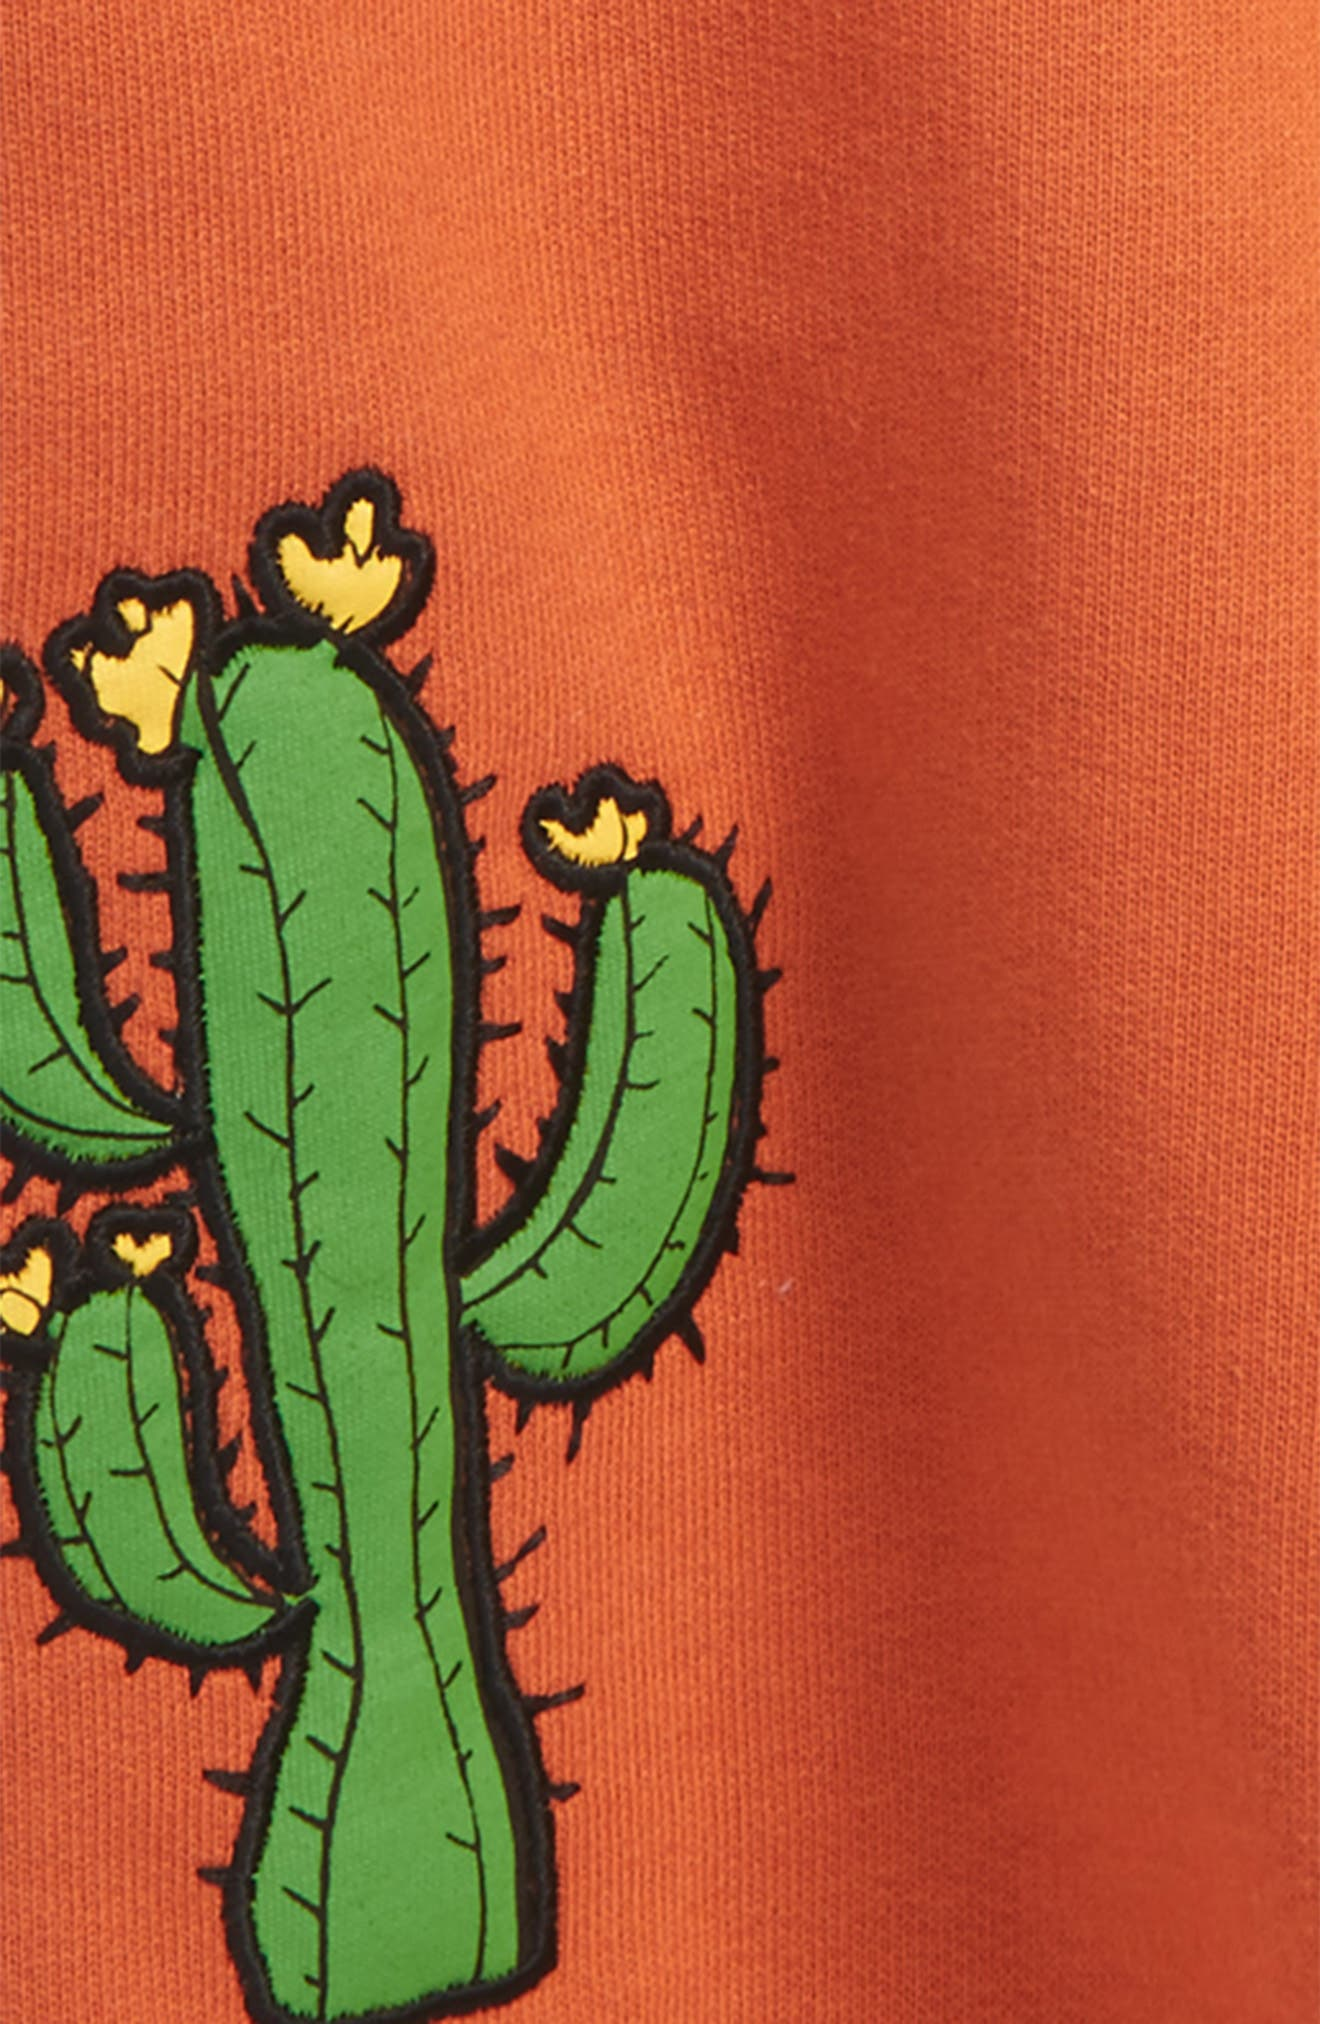 Donkey & Cactus Appliqué Organic Cotton Sweatshirt,                             Alternate thumbnail 2, color,                             Orange